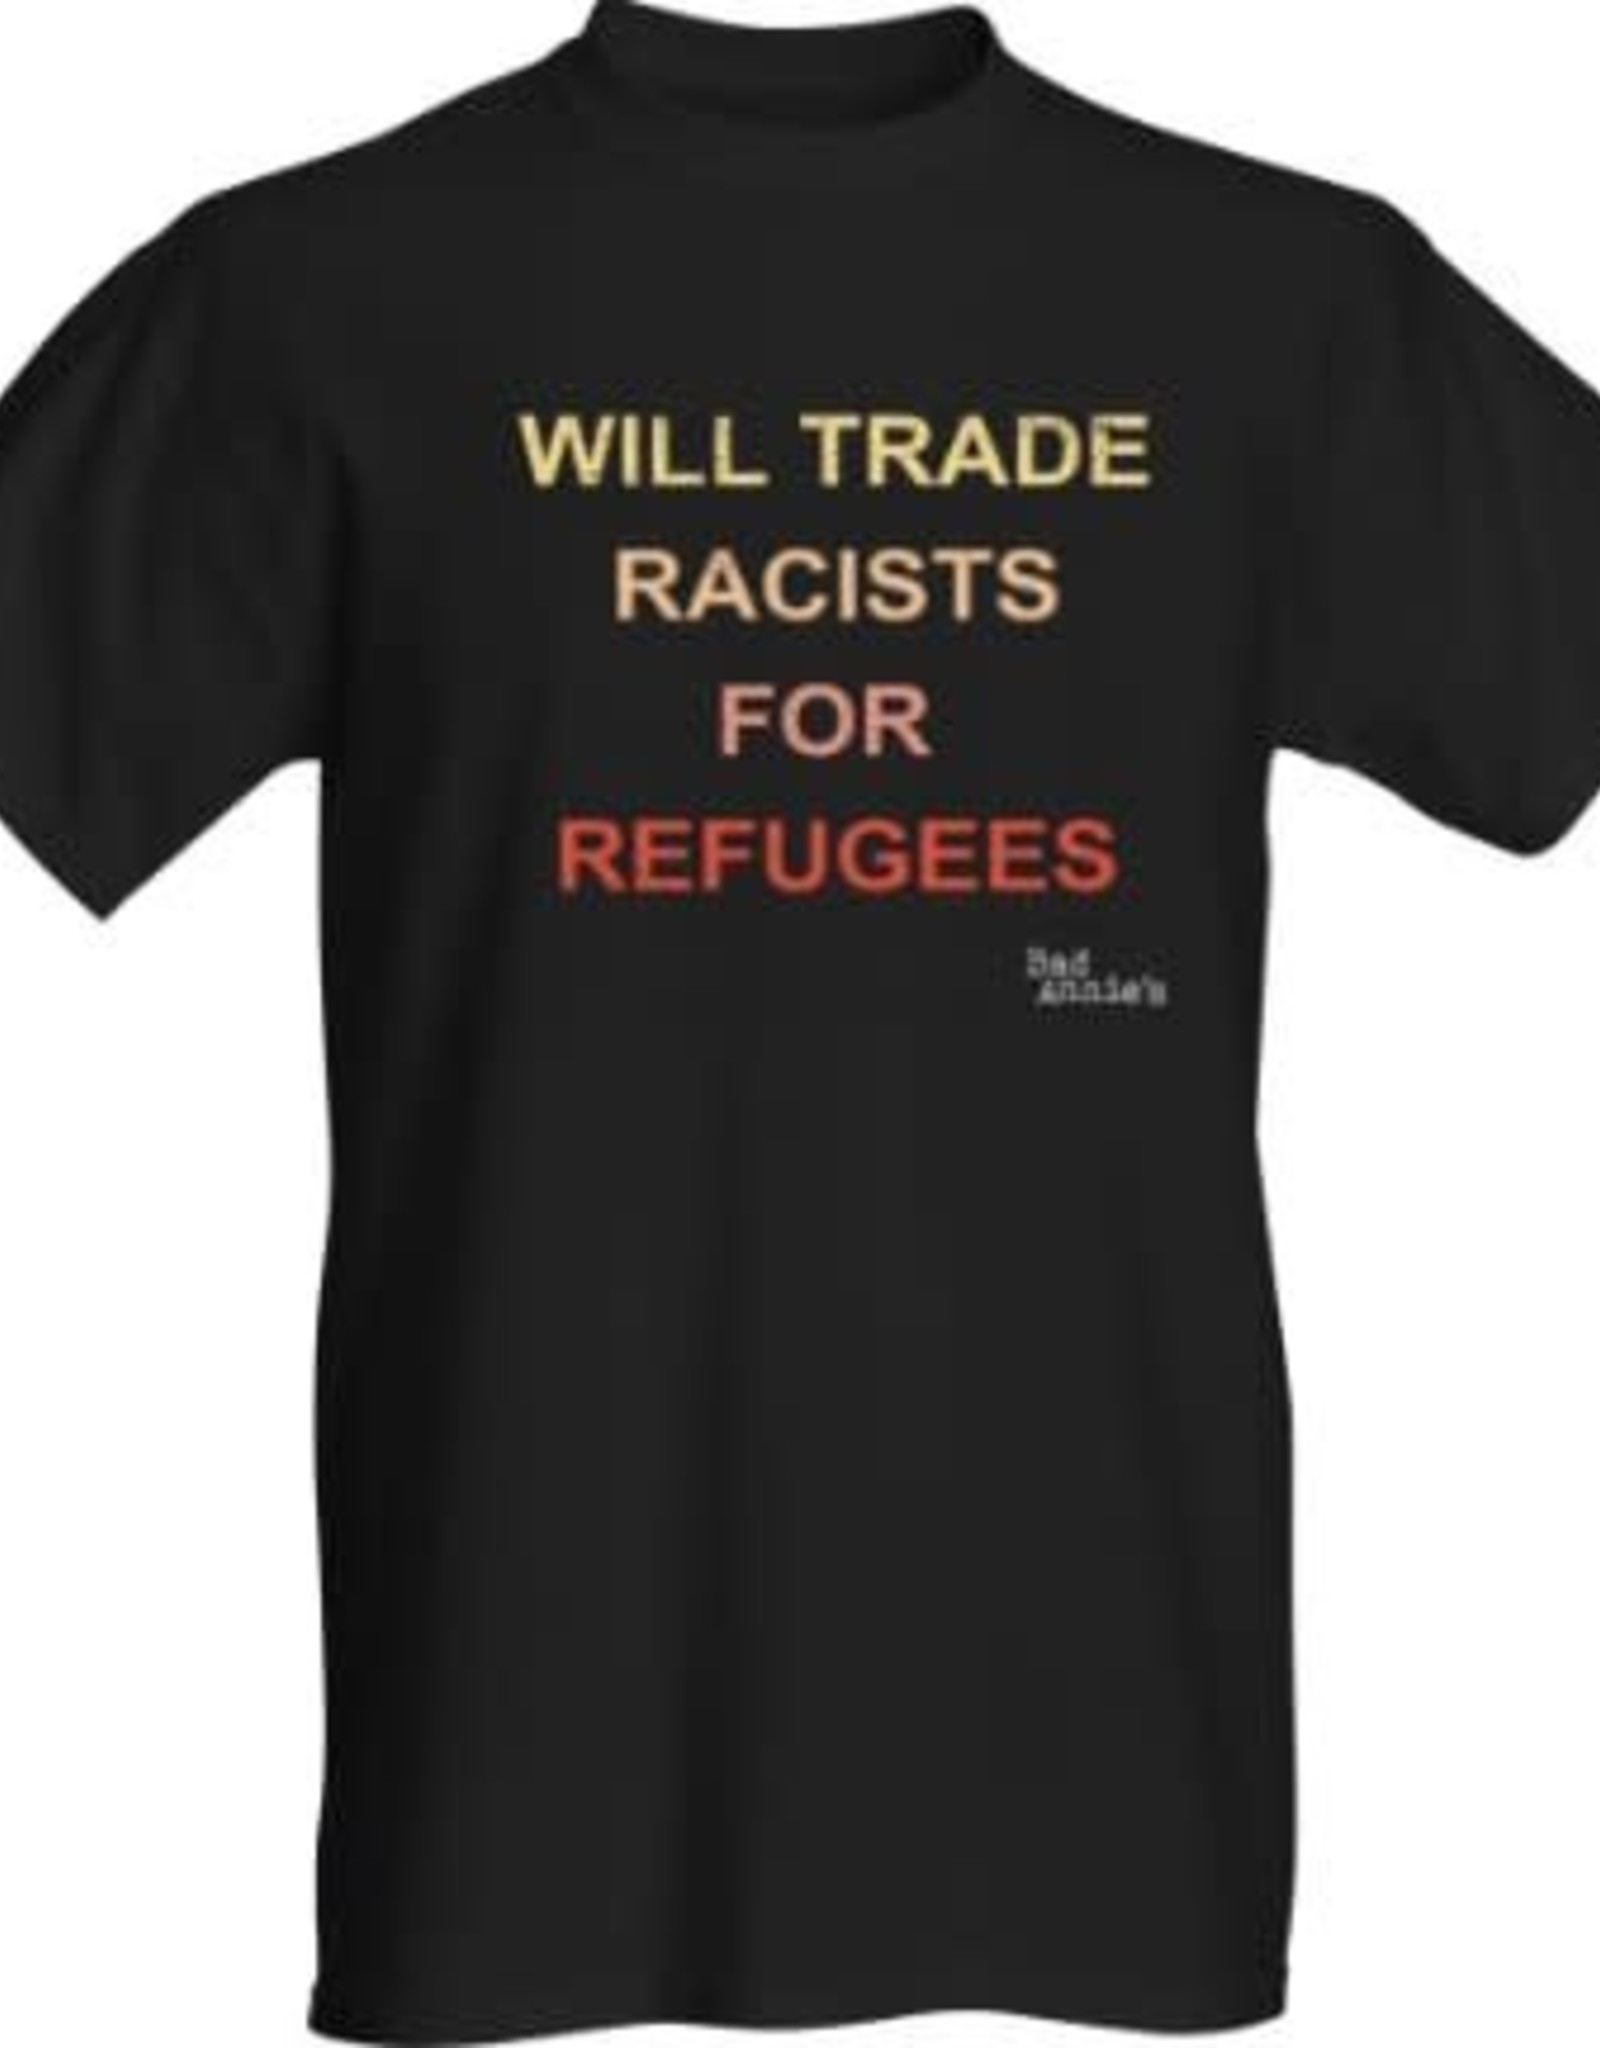 T-Shirt - Will Trade Racists For Refugees